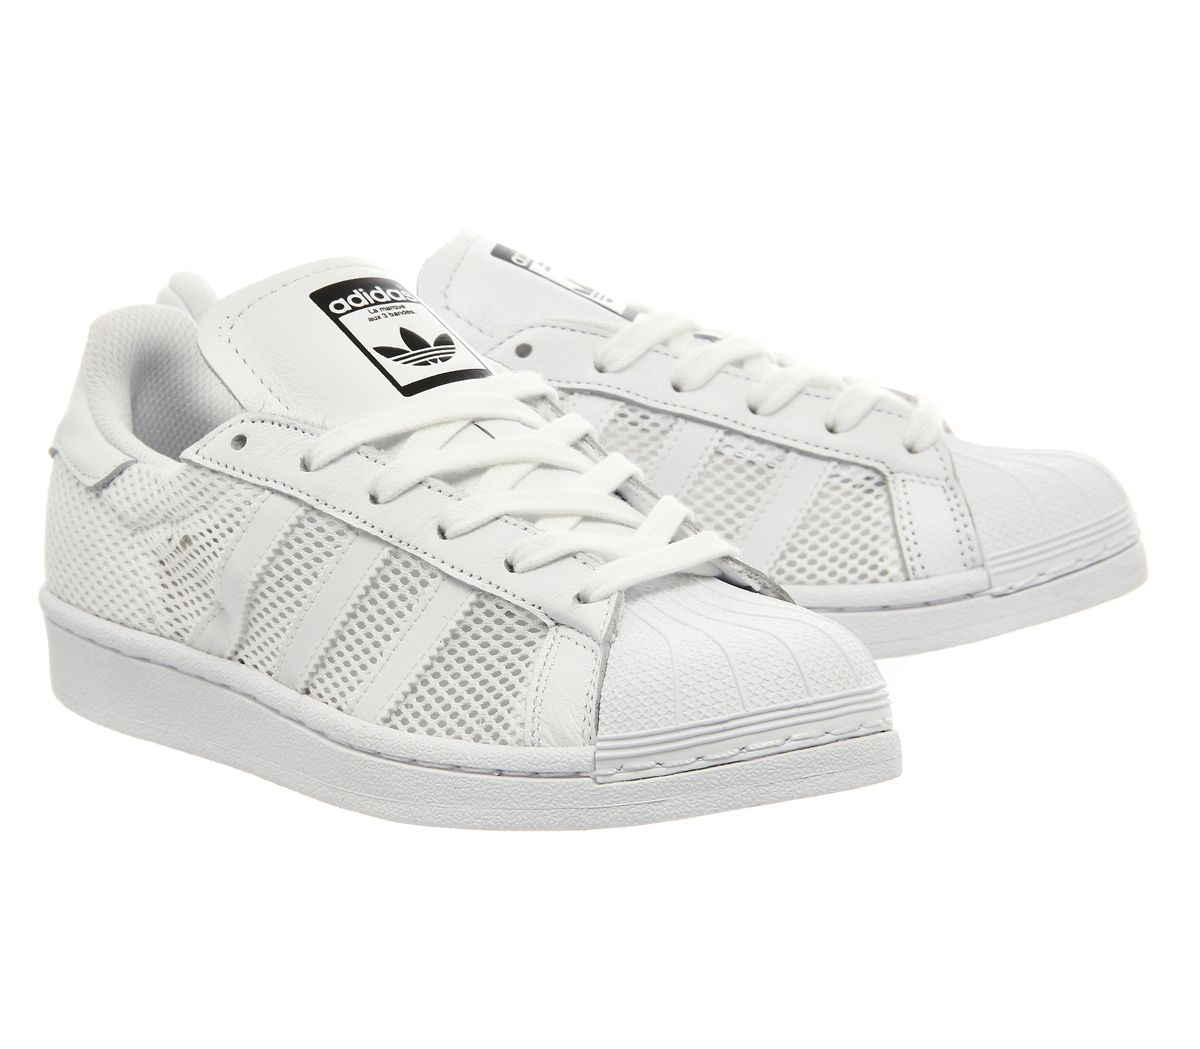 adidas superstar 1 white mono mesh exclusive